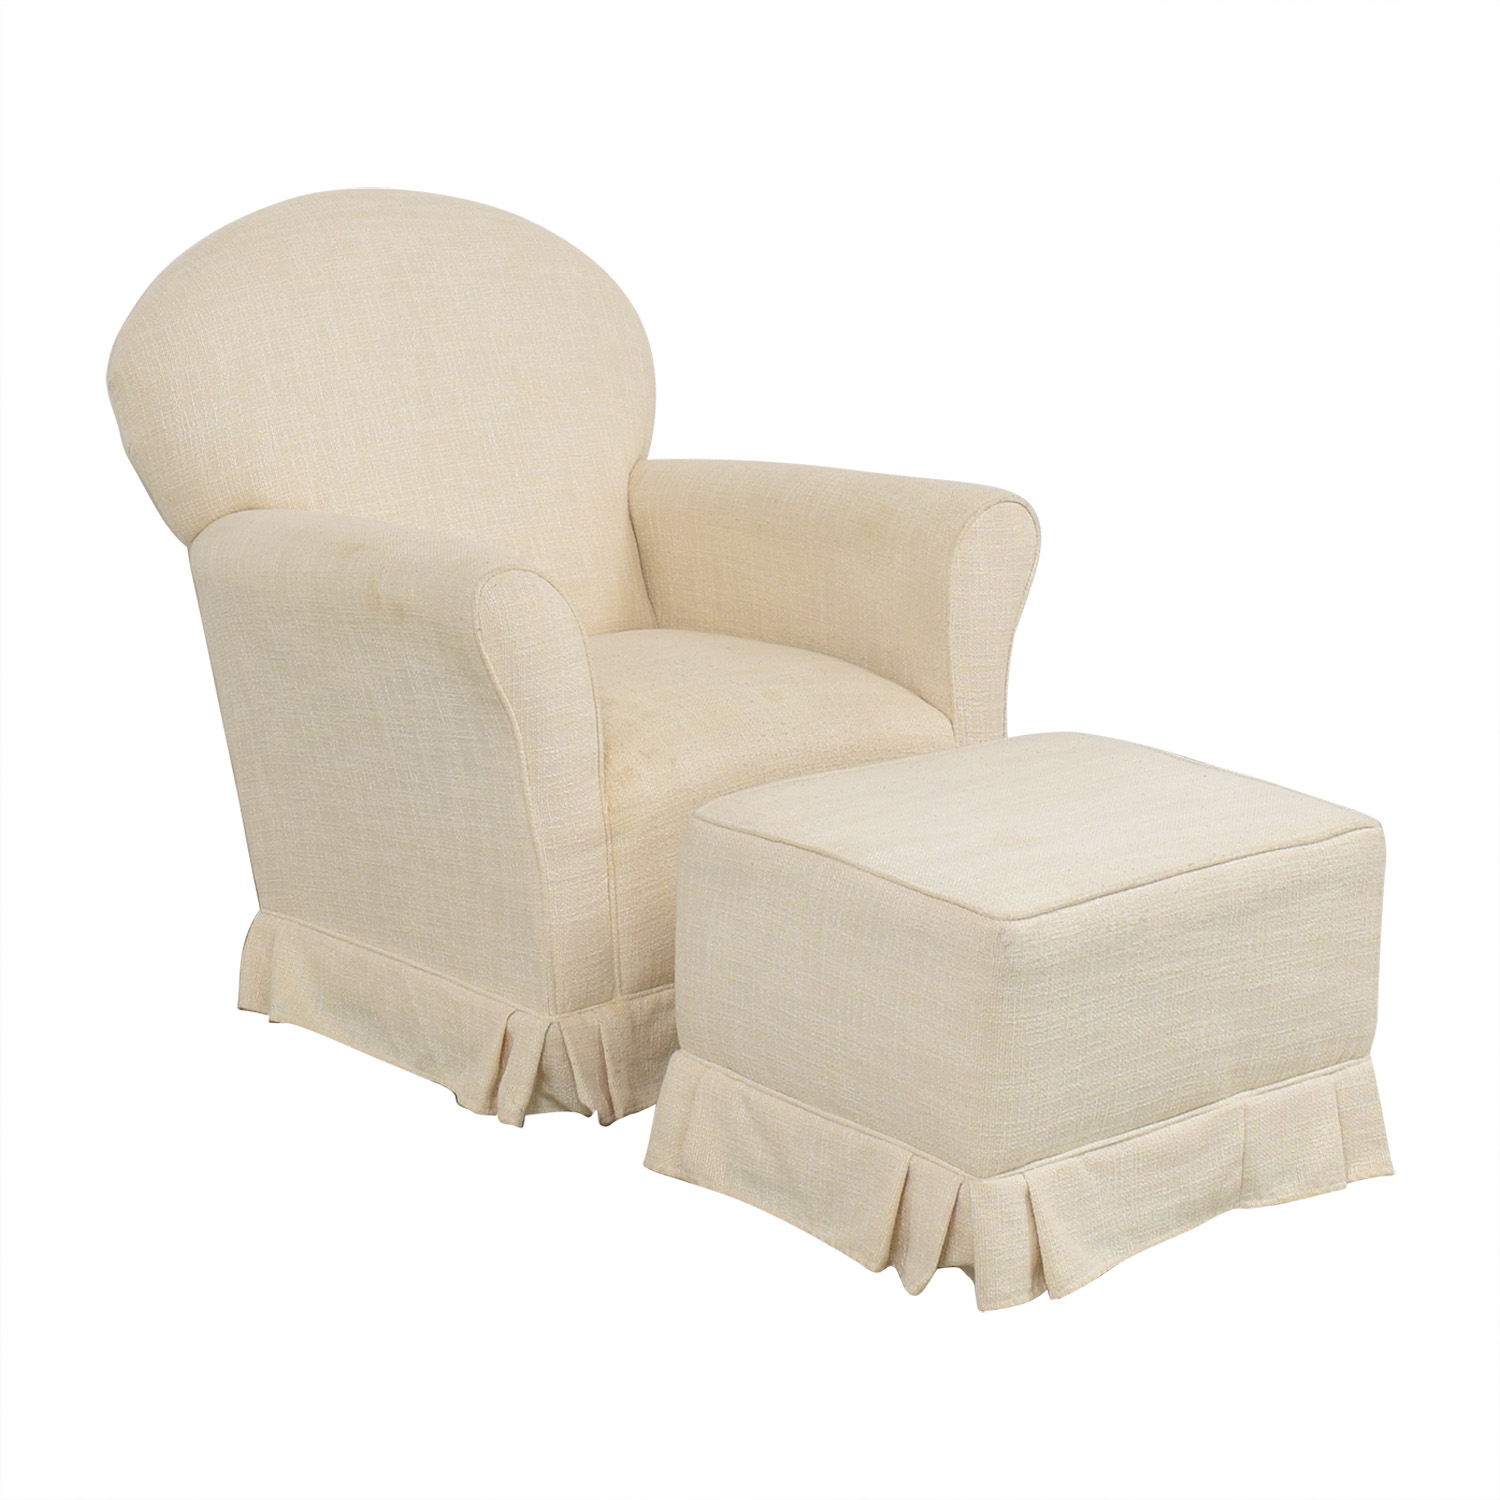 buy Little Castle Furniture Little Castle Furniture Glider Chair and Ottoman online